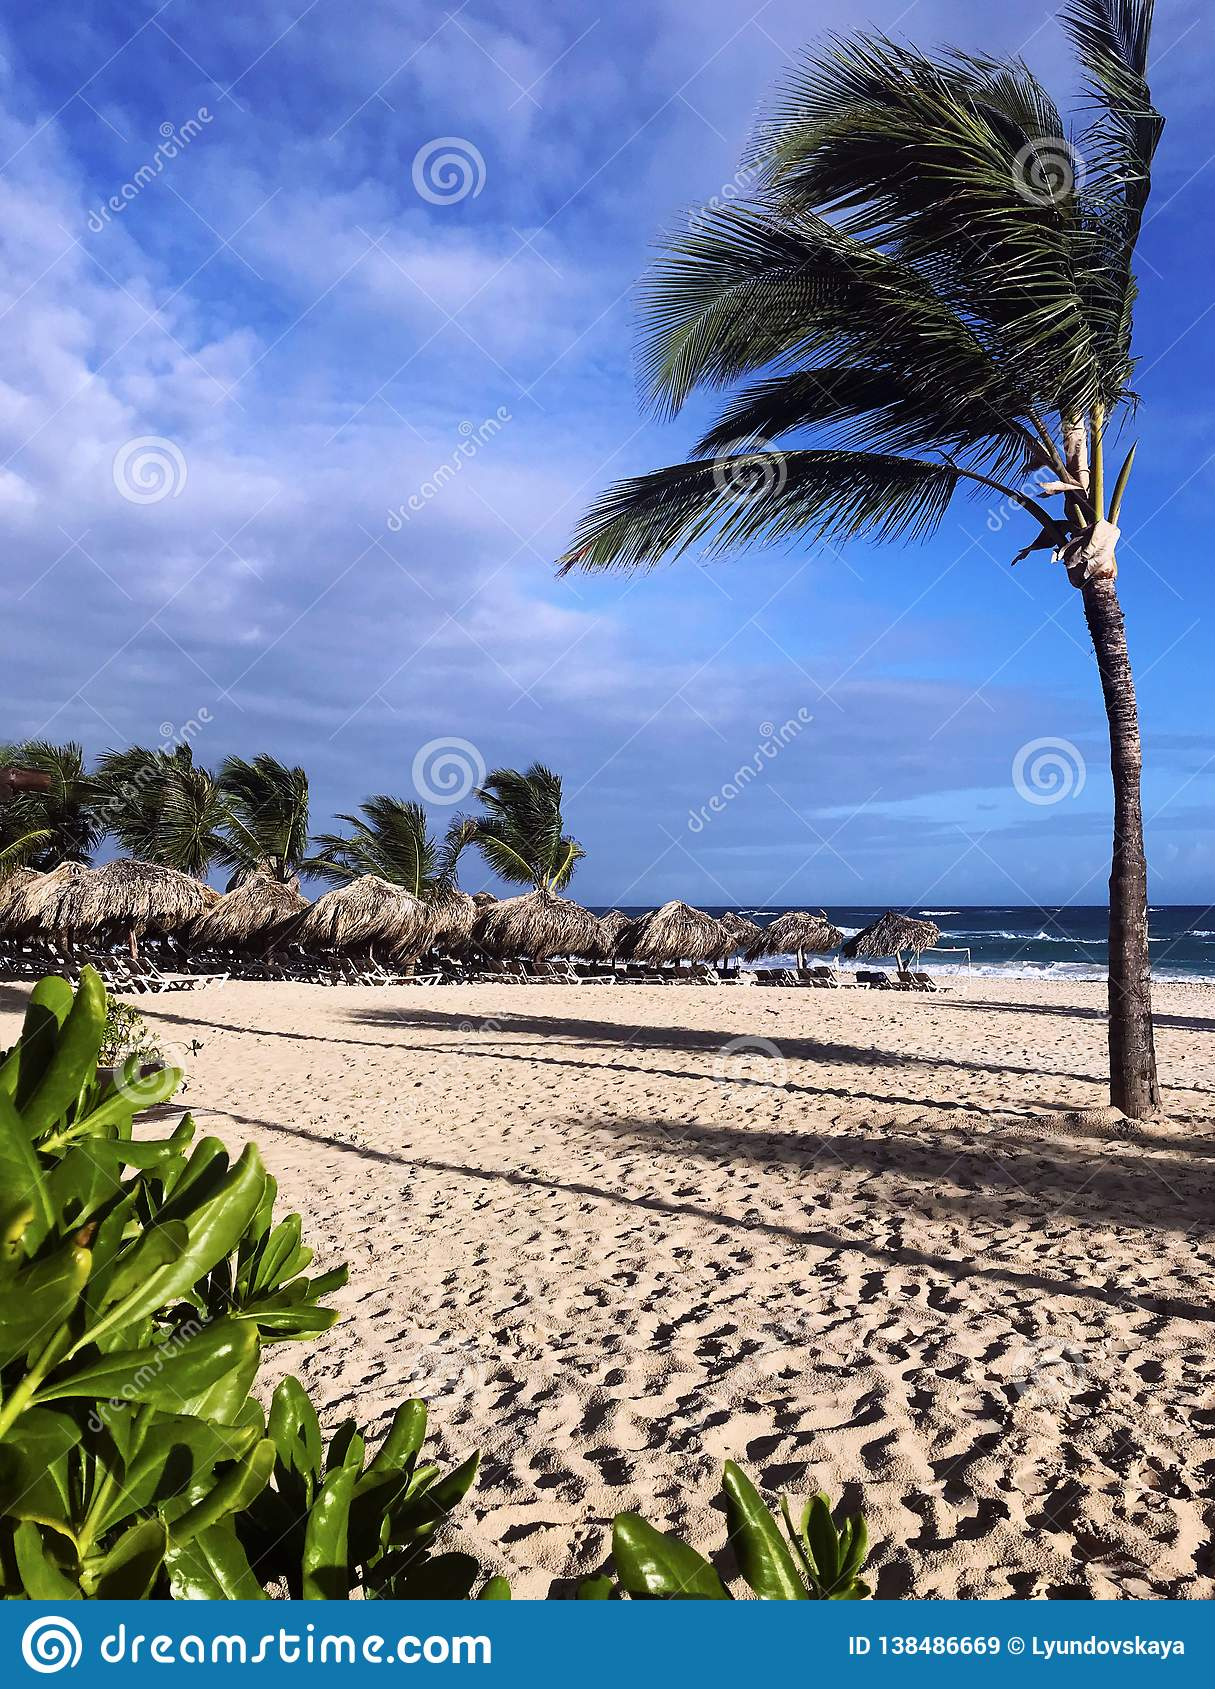 High thin coconut palm tree bends under the wind on the beach from the sand. Beach, bungalow, sky, clouds